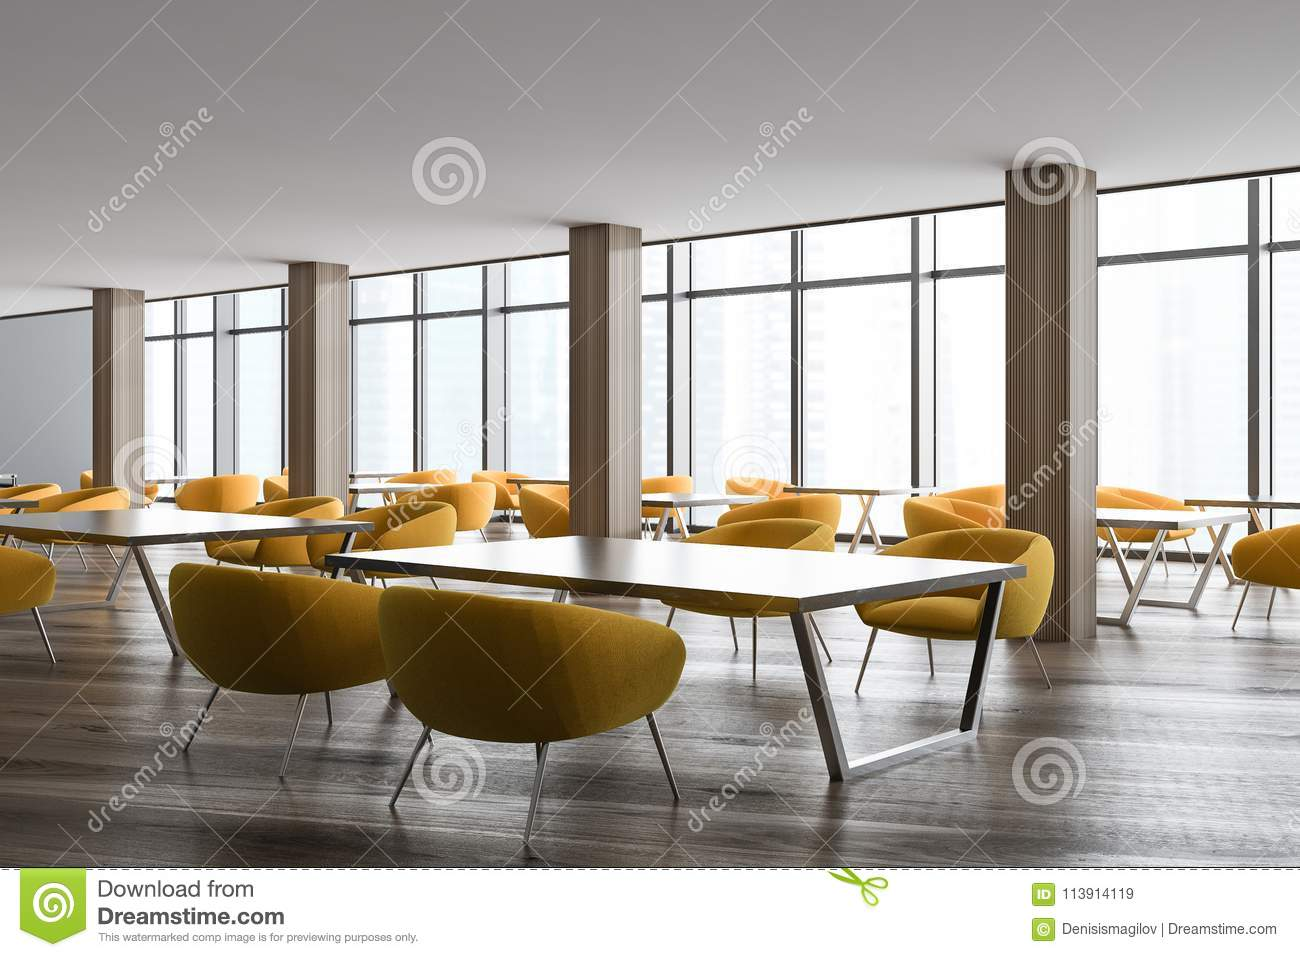 Modern Office Staff Room Or Classroom Corner With Dark Gray Walls, Loft  Windows, Wooden Floor, Square Desks And Yellow Chairs. 3d Rendering Mock Up